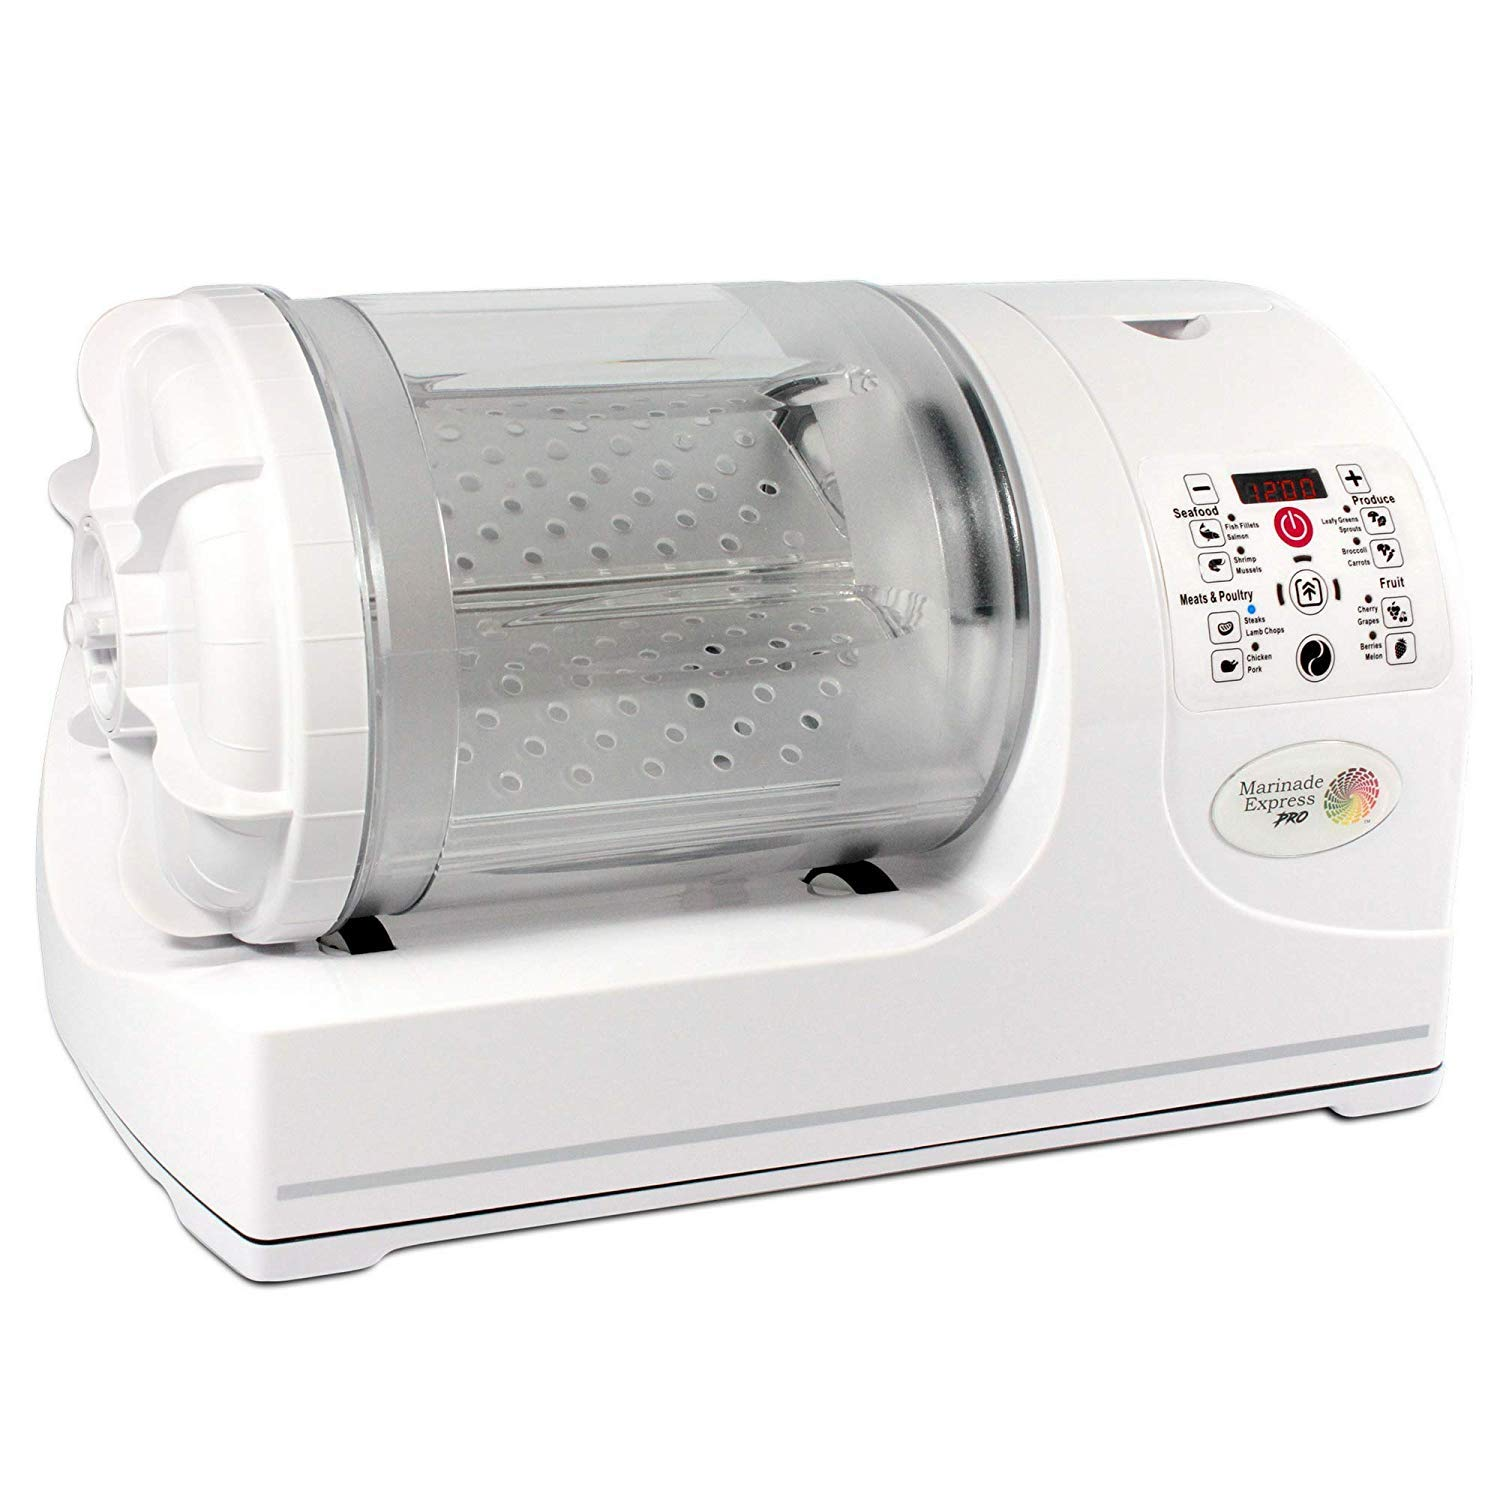 Marinade Express Pro PMP-310 Professional Marinade System, Vacuum Sealed, Meat and Vegetable Tenderizer, Titan Drum, Canister Sealed, LED Display, Professional Chef Technology, Auto Shut Off, White